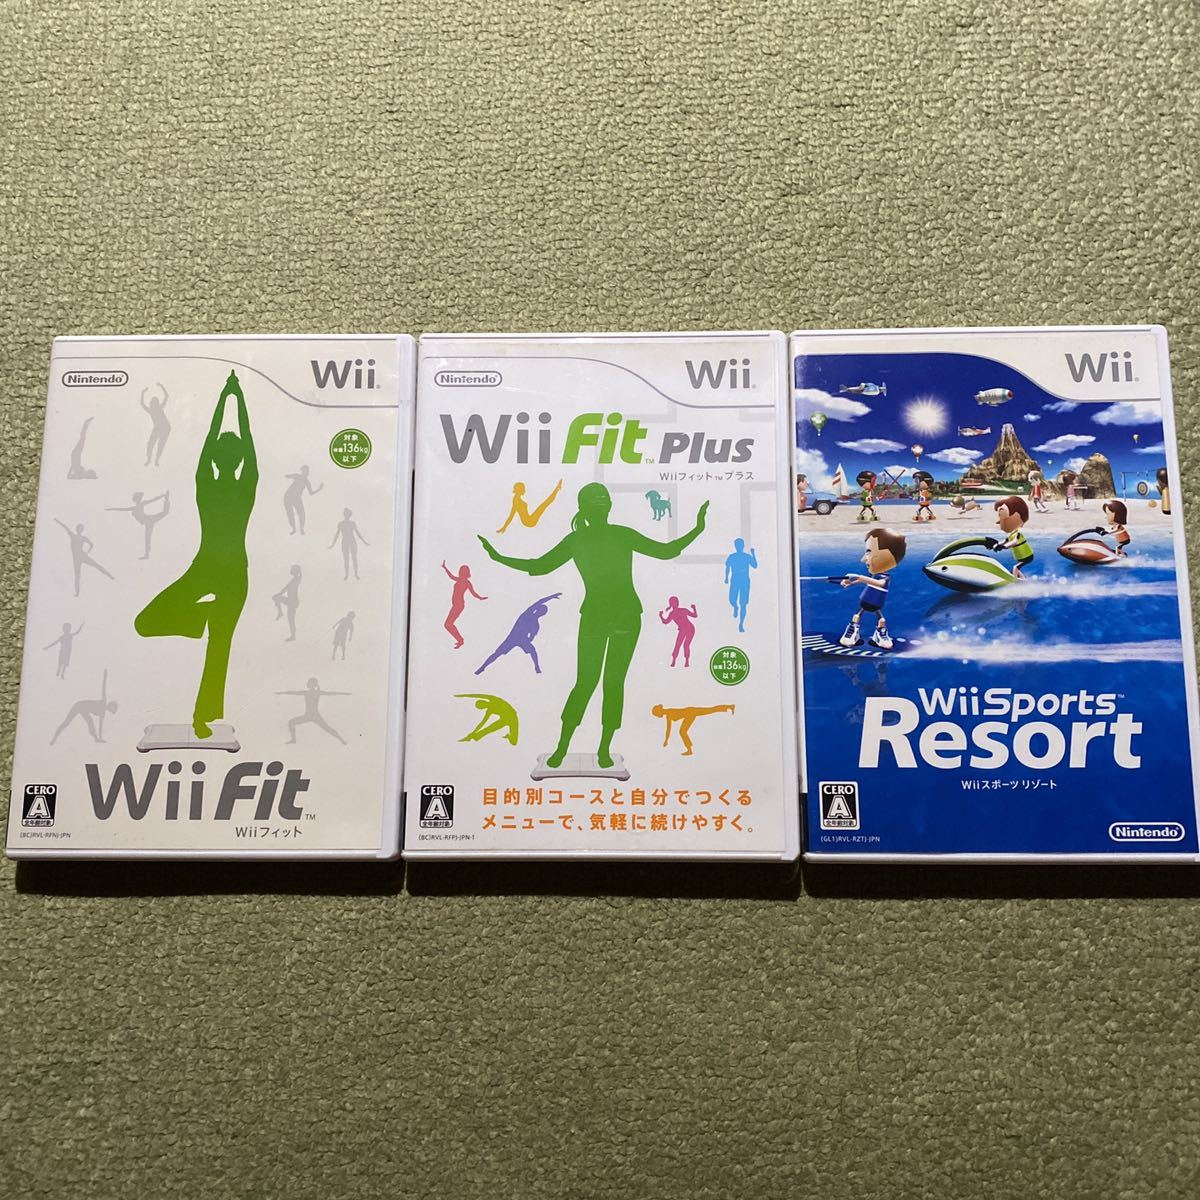 Wii Wii Fit Wii Sportsリゾート 2本セット